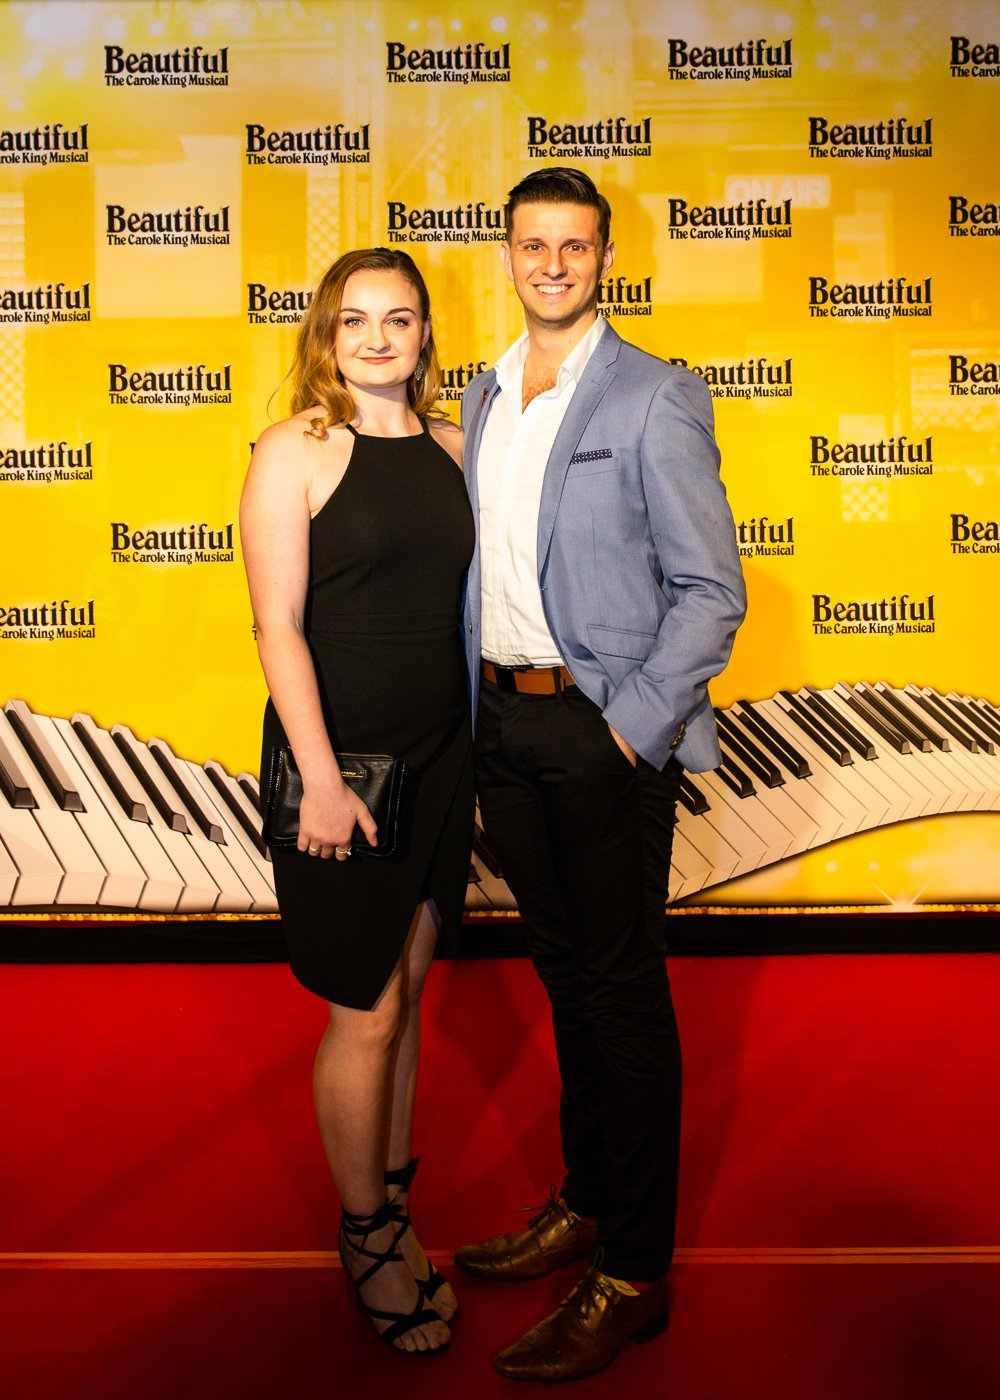 Beautiful: The Carole King Musical Premiere